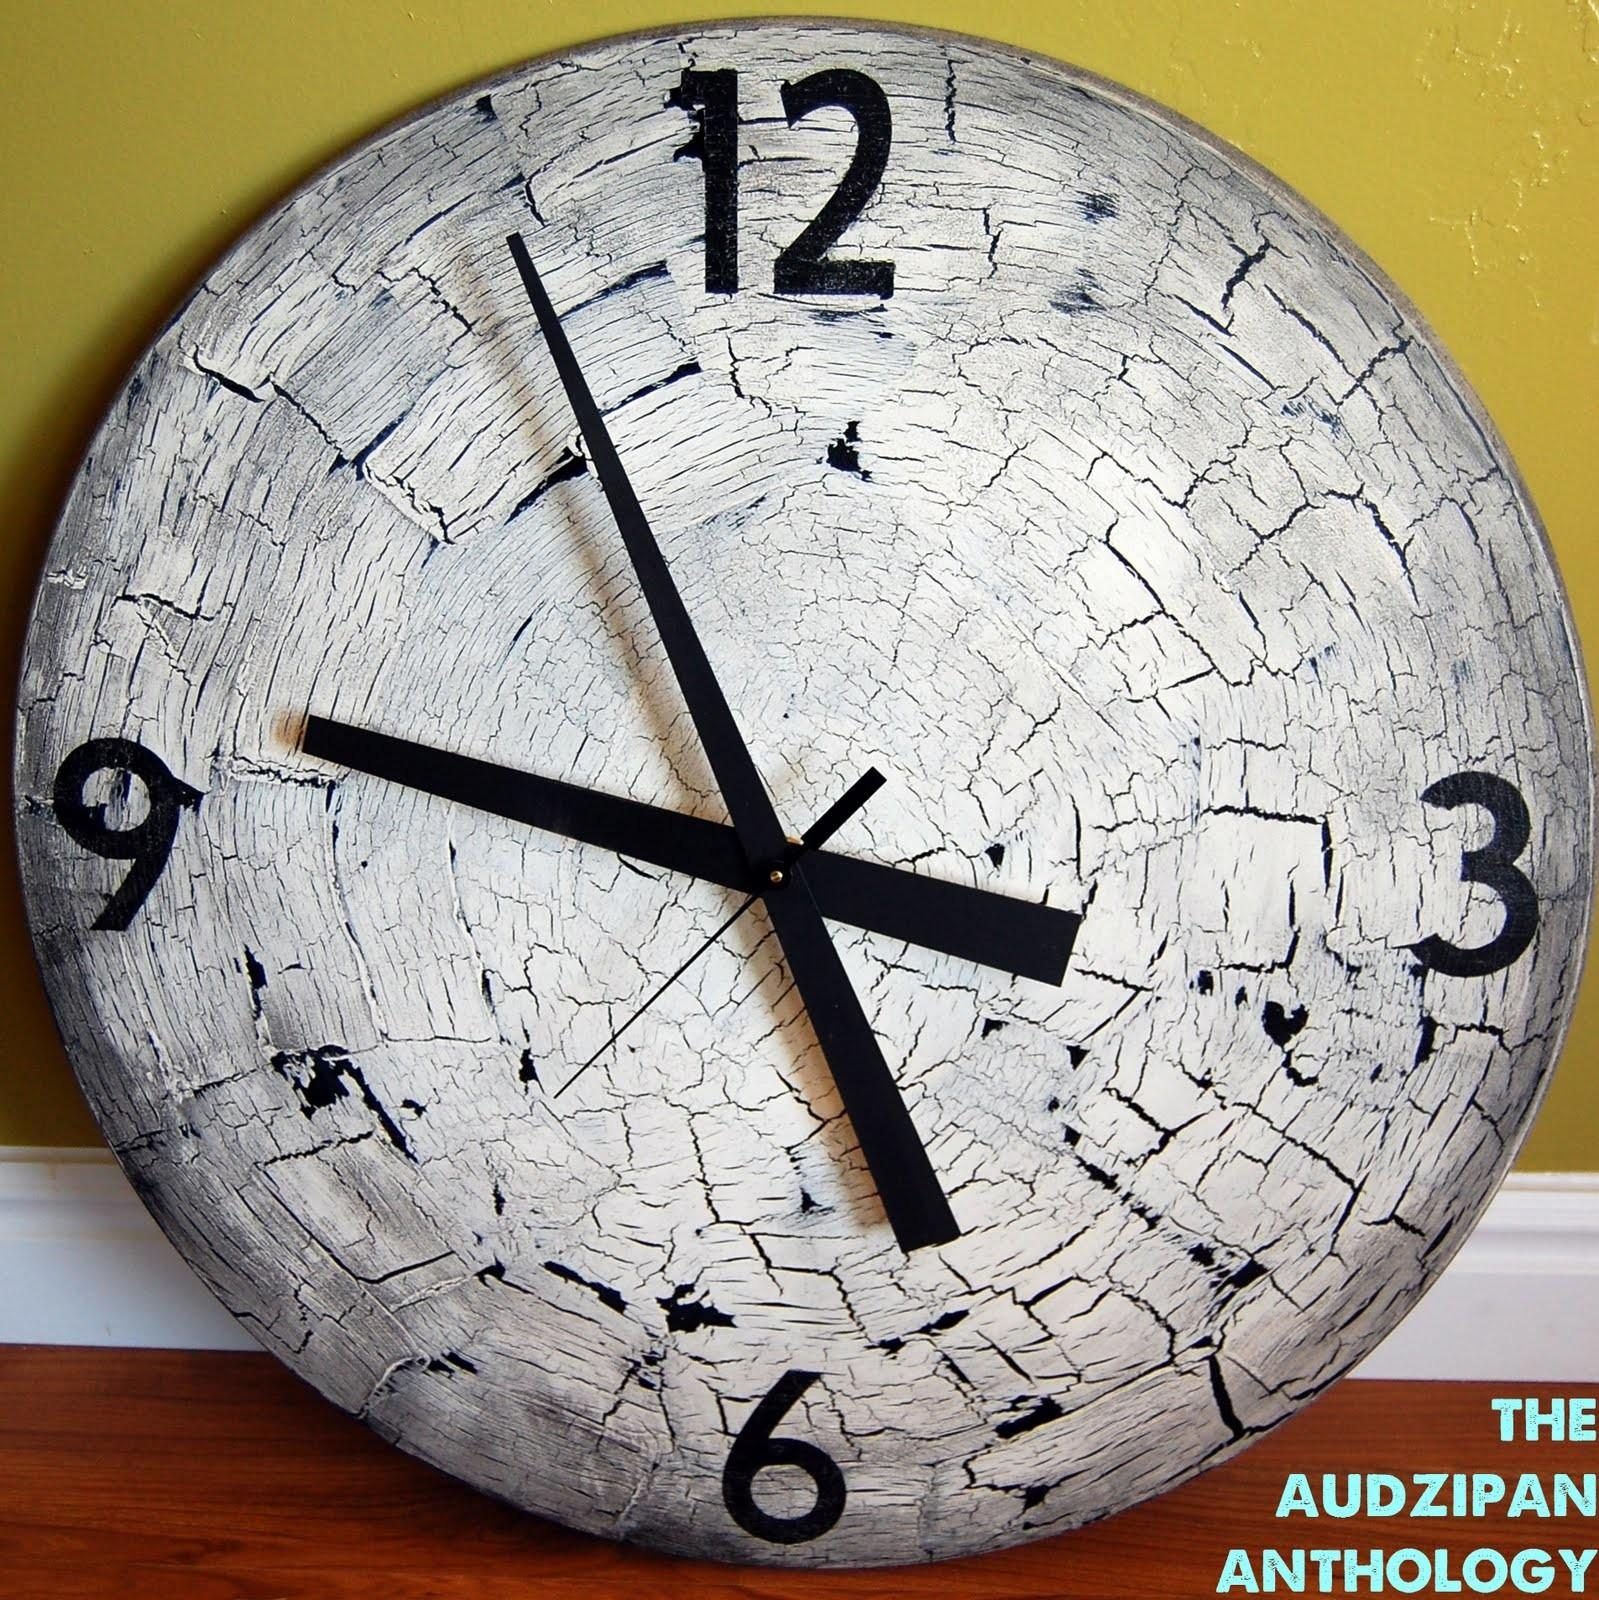 Audzipan Anthology Diy Big Wall Clock